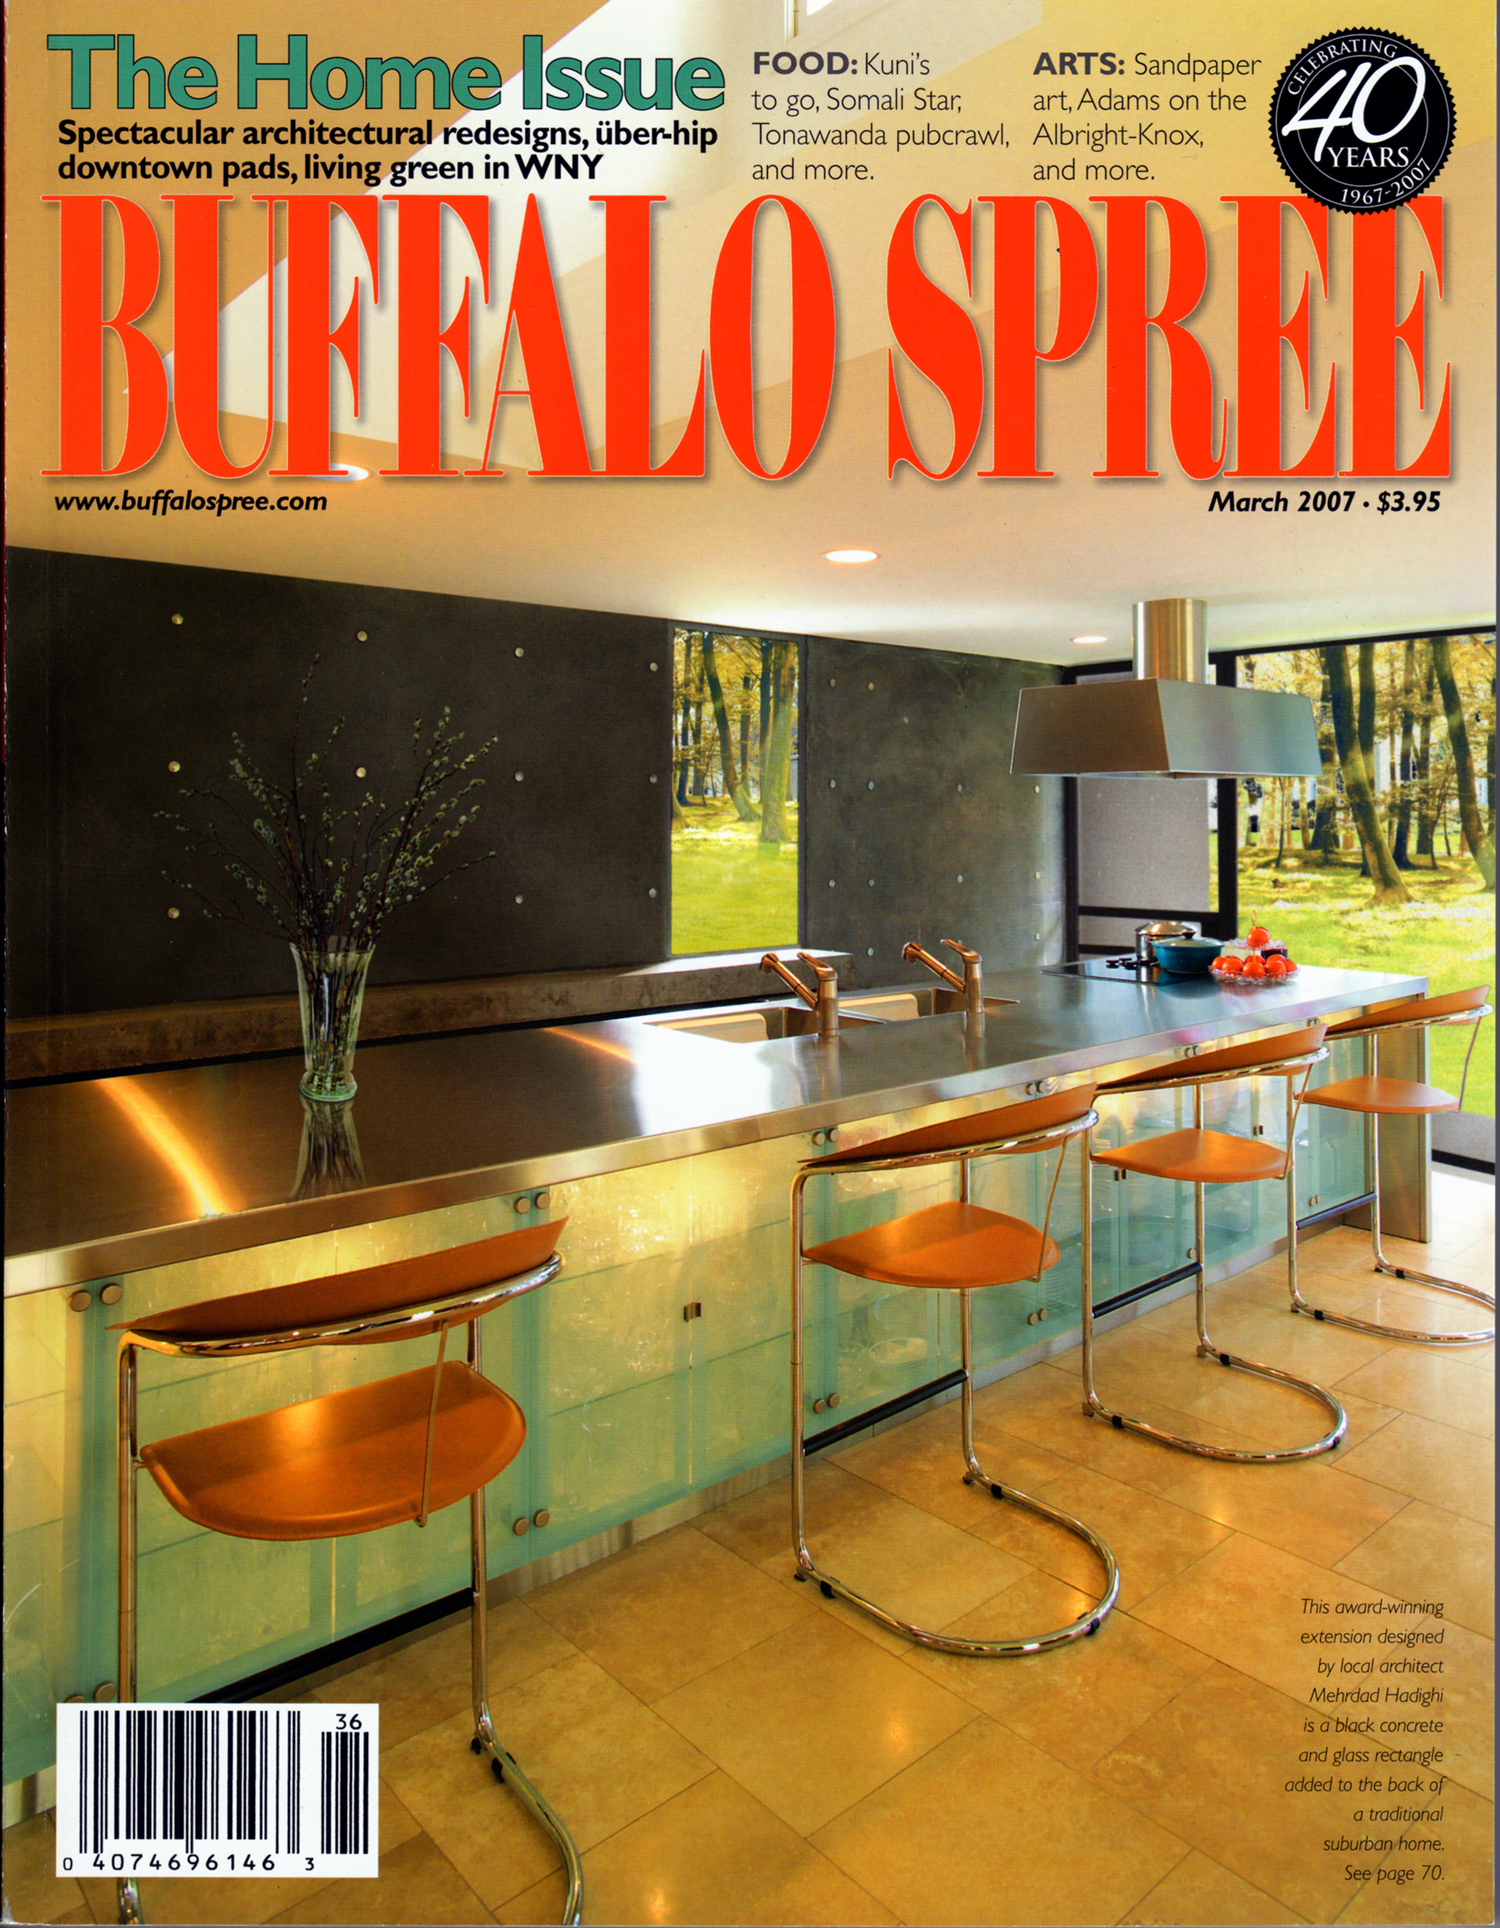 Buff. Spree Cover001.jpg